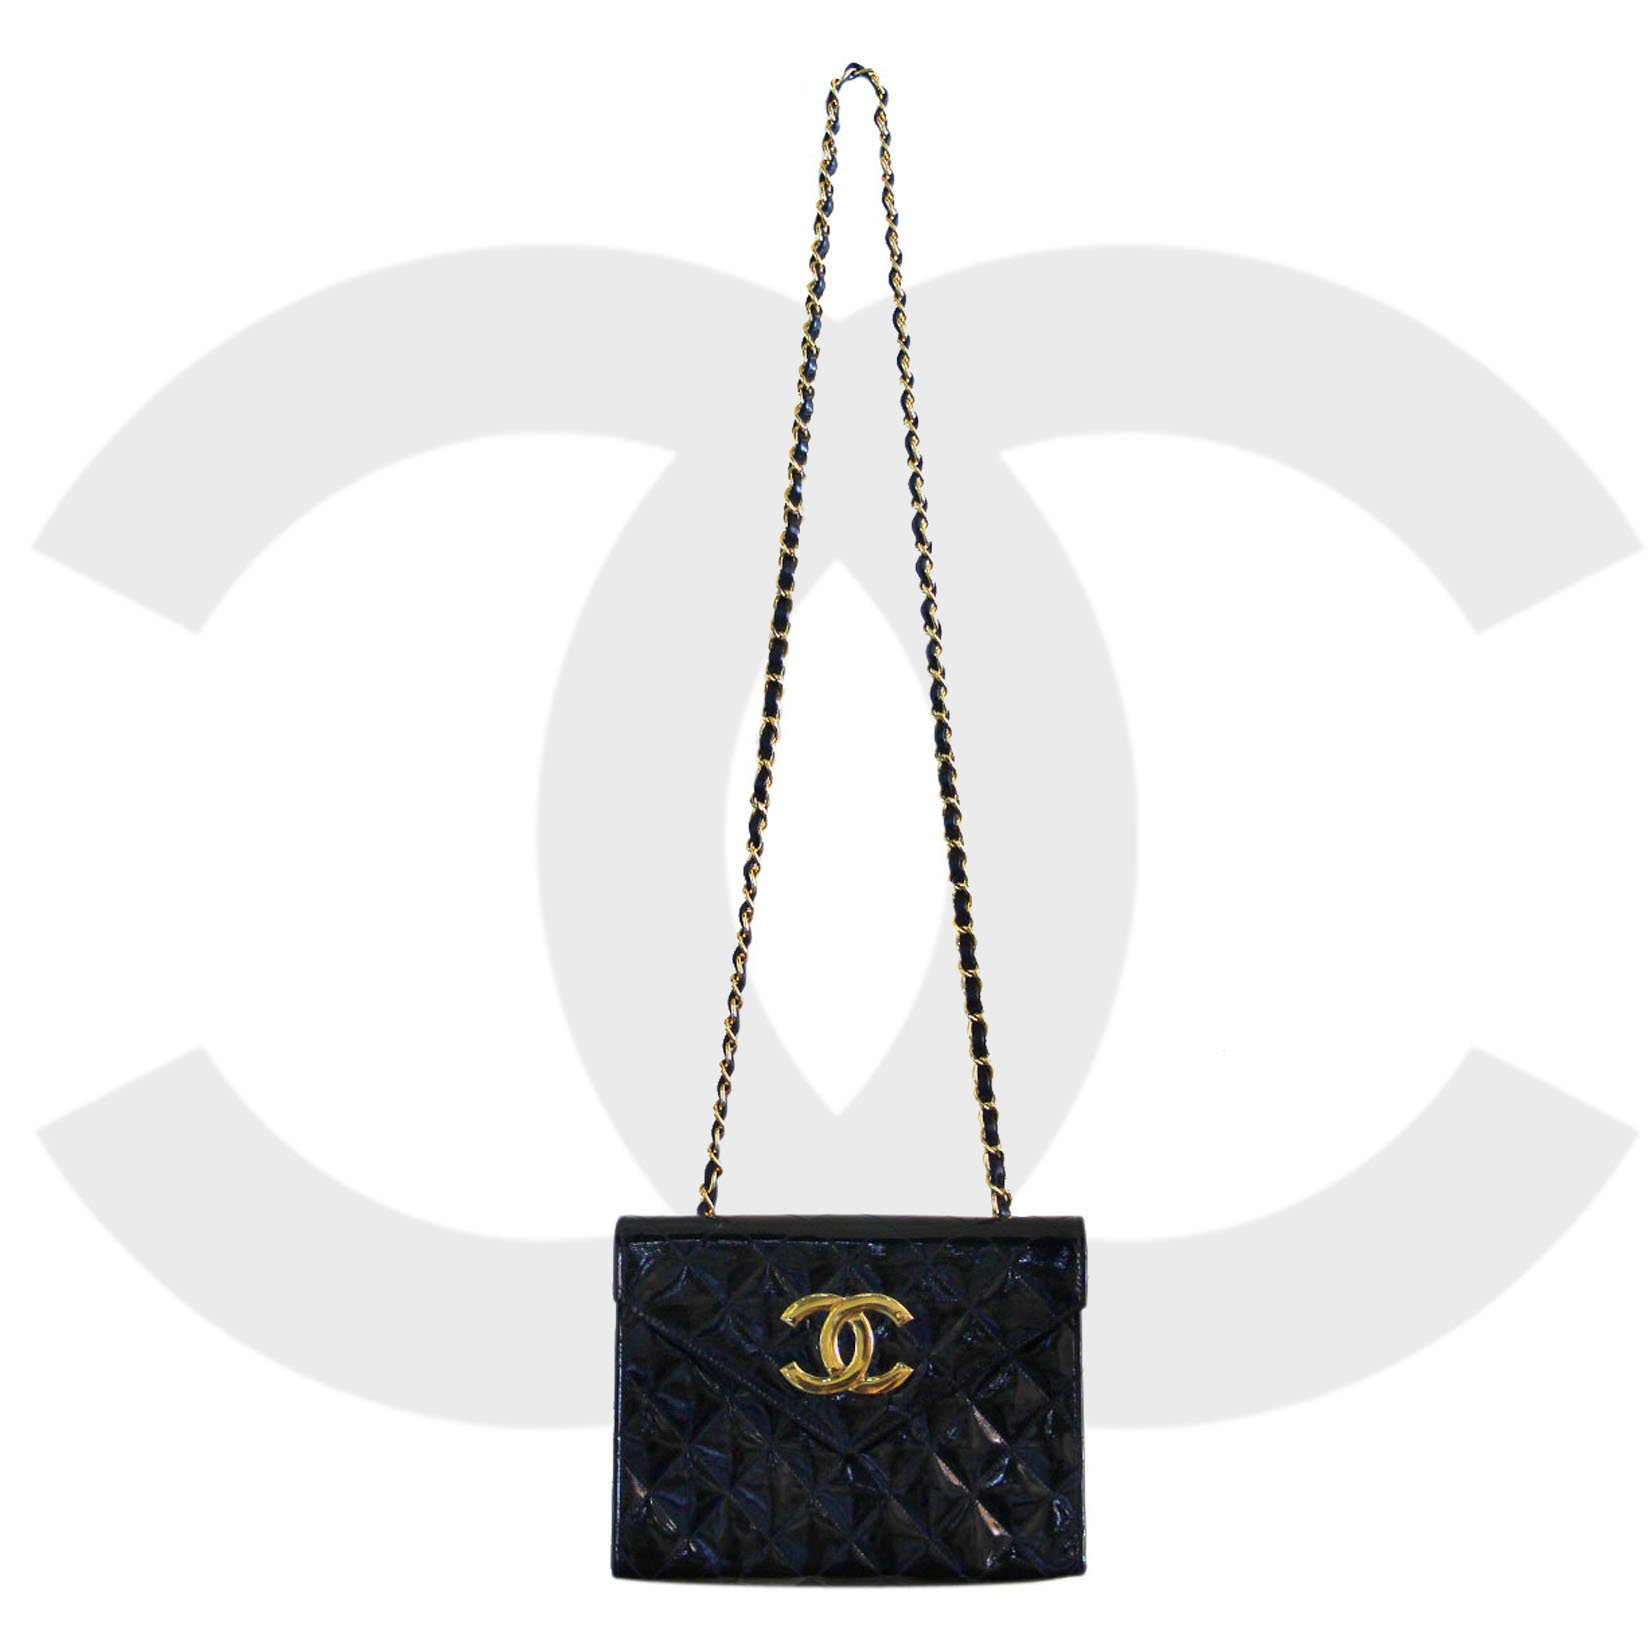 Vintage Chanel Patent Black Leather Shoulder Bag